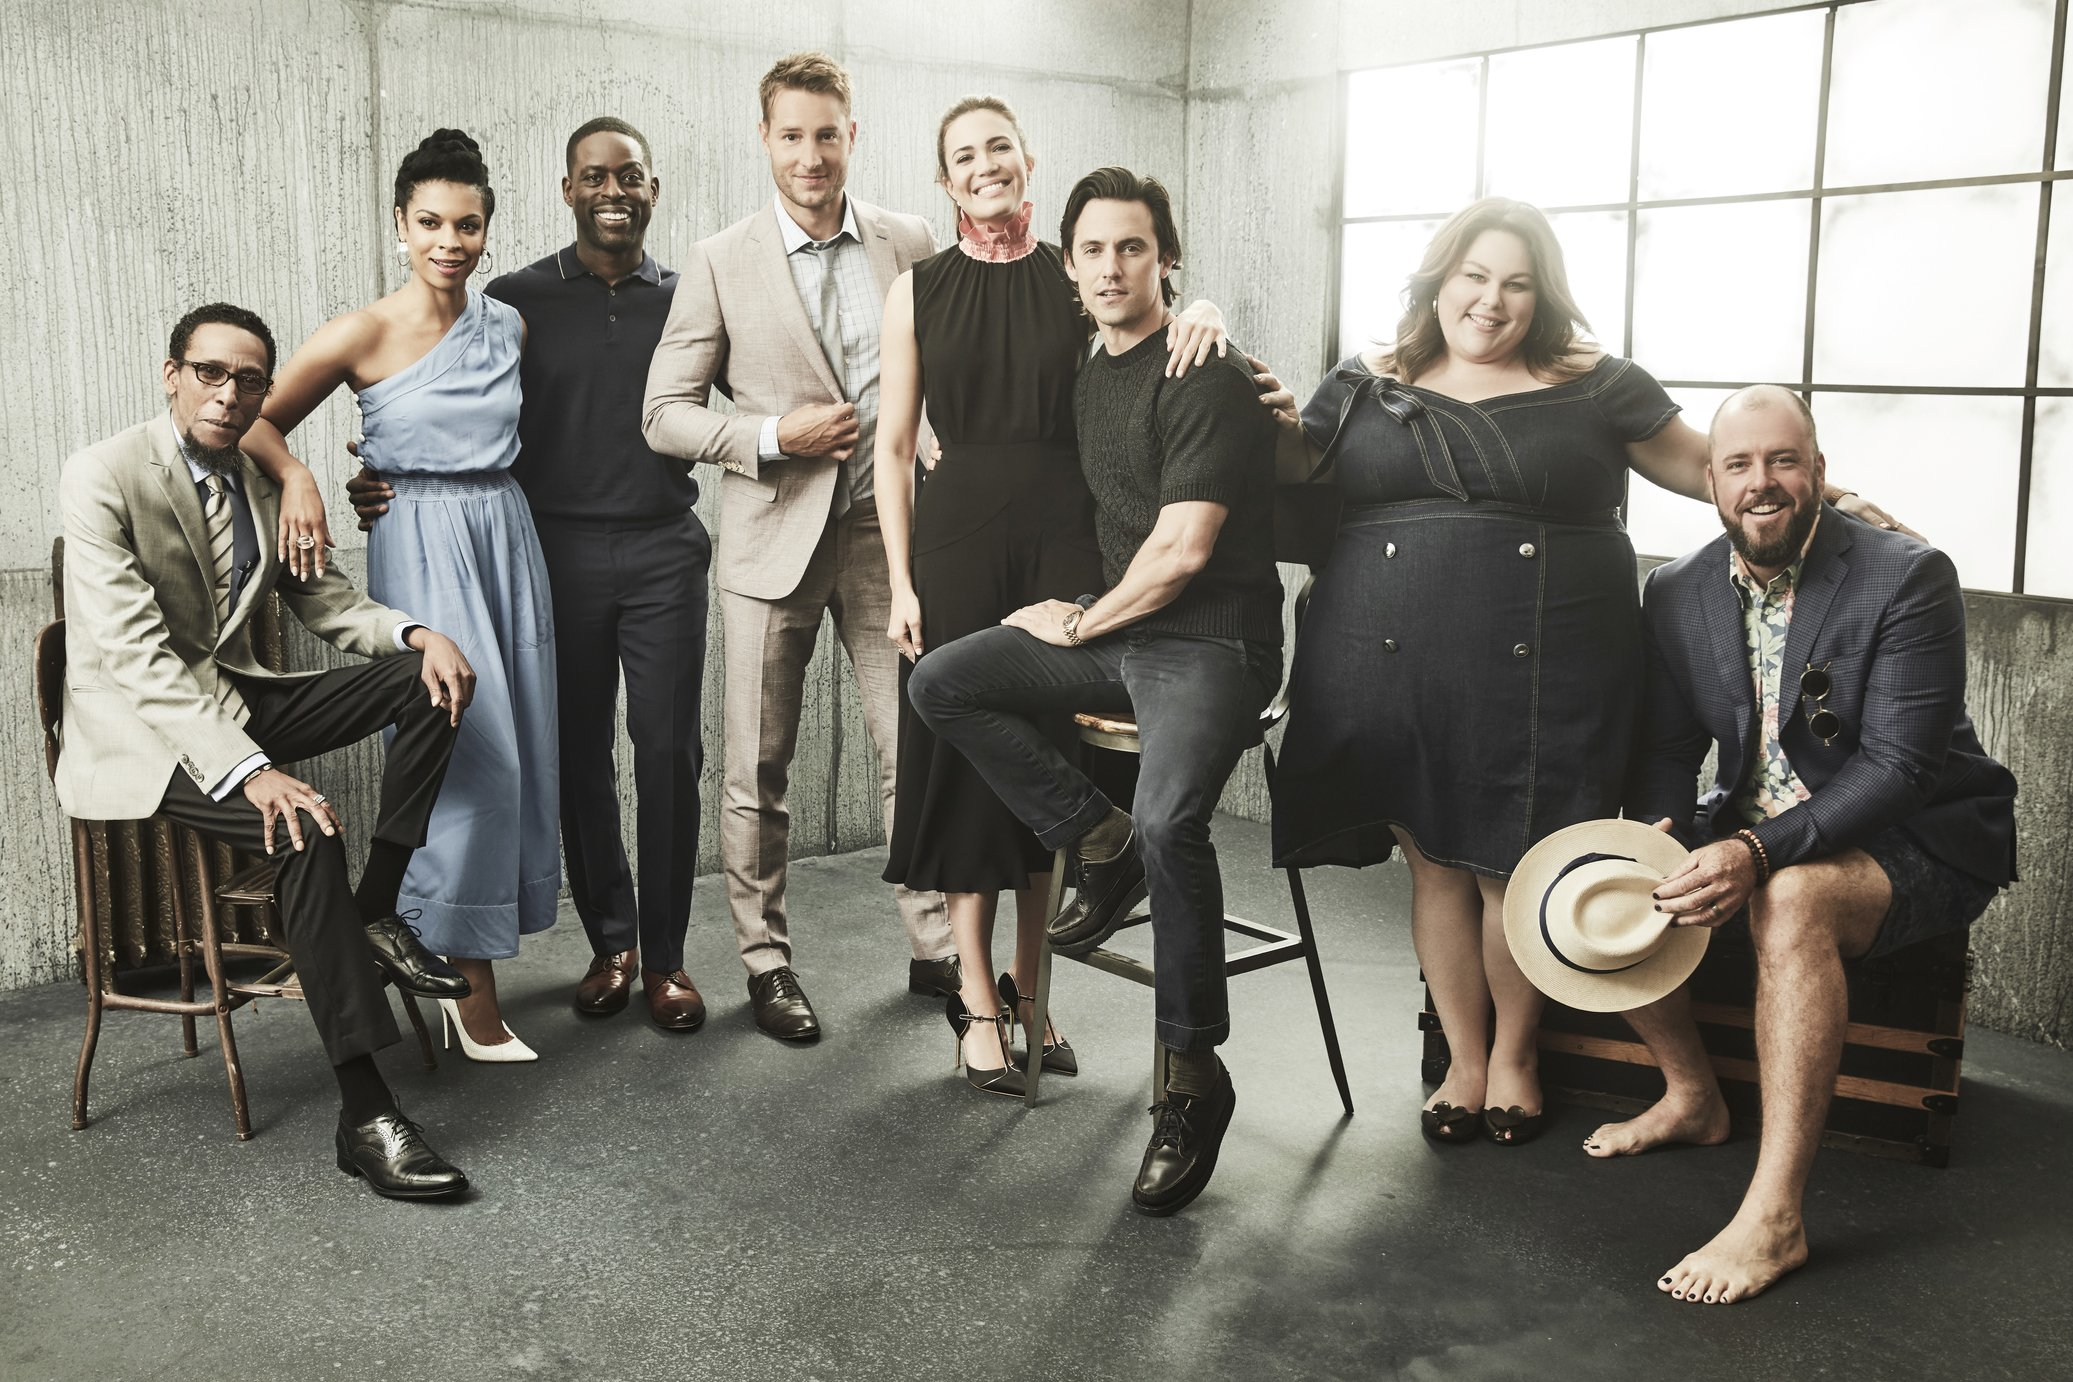 August 2017 -- Pictured: Ron Cephas Jones, Susan Kelechi Watson, Sterling K. Brown, Chrissy Metz, Mandy Moore, Milo Ventimiglia, Justin Hartley, Chris Sullivan   | Photo: GettyImages